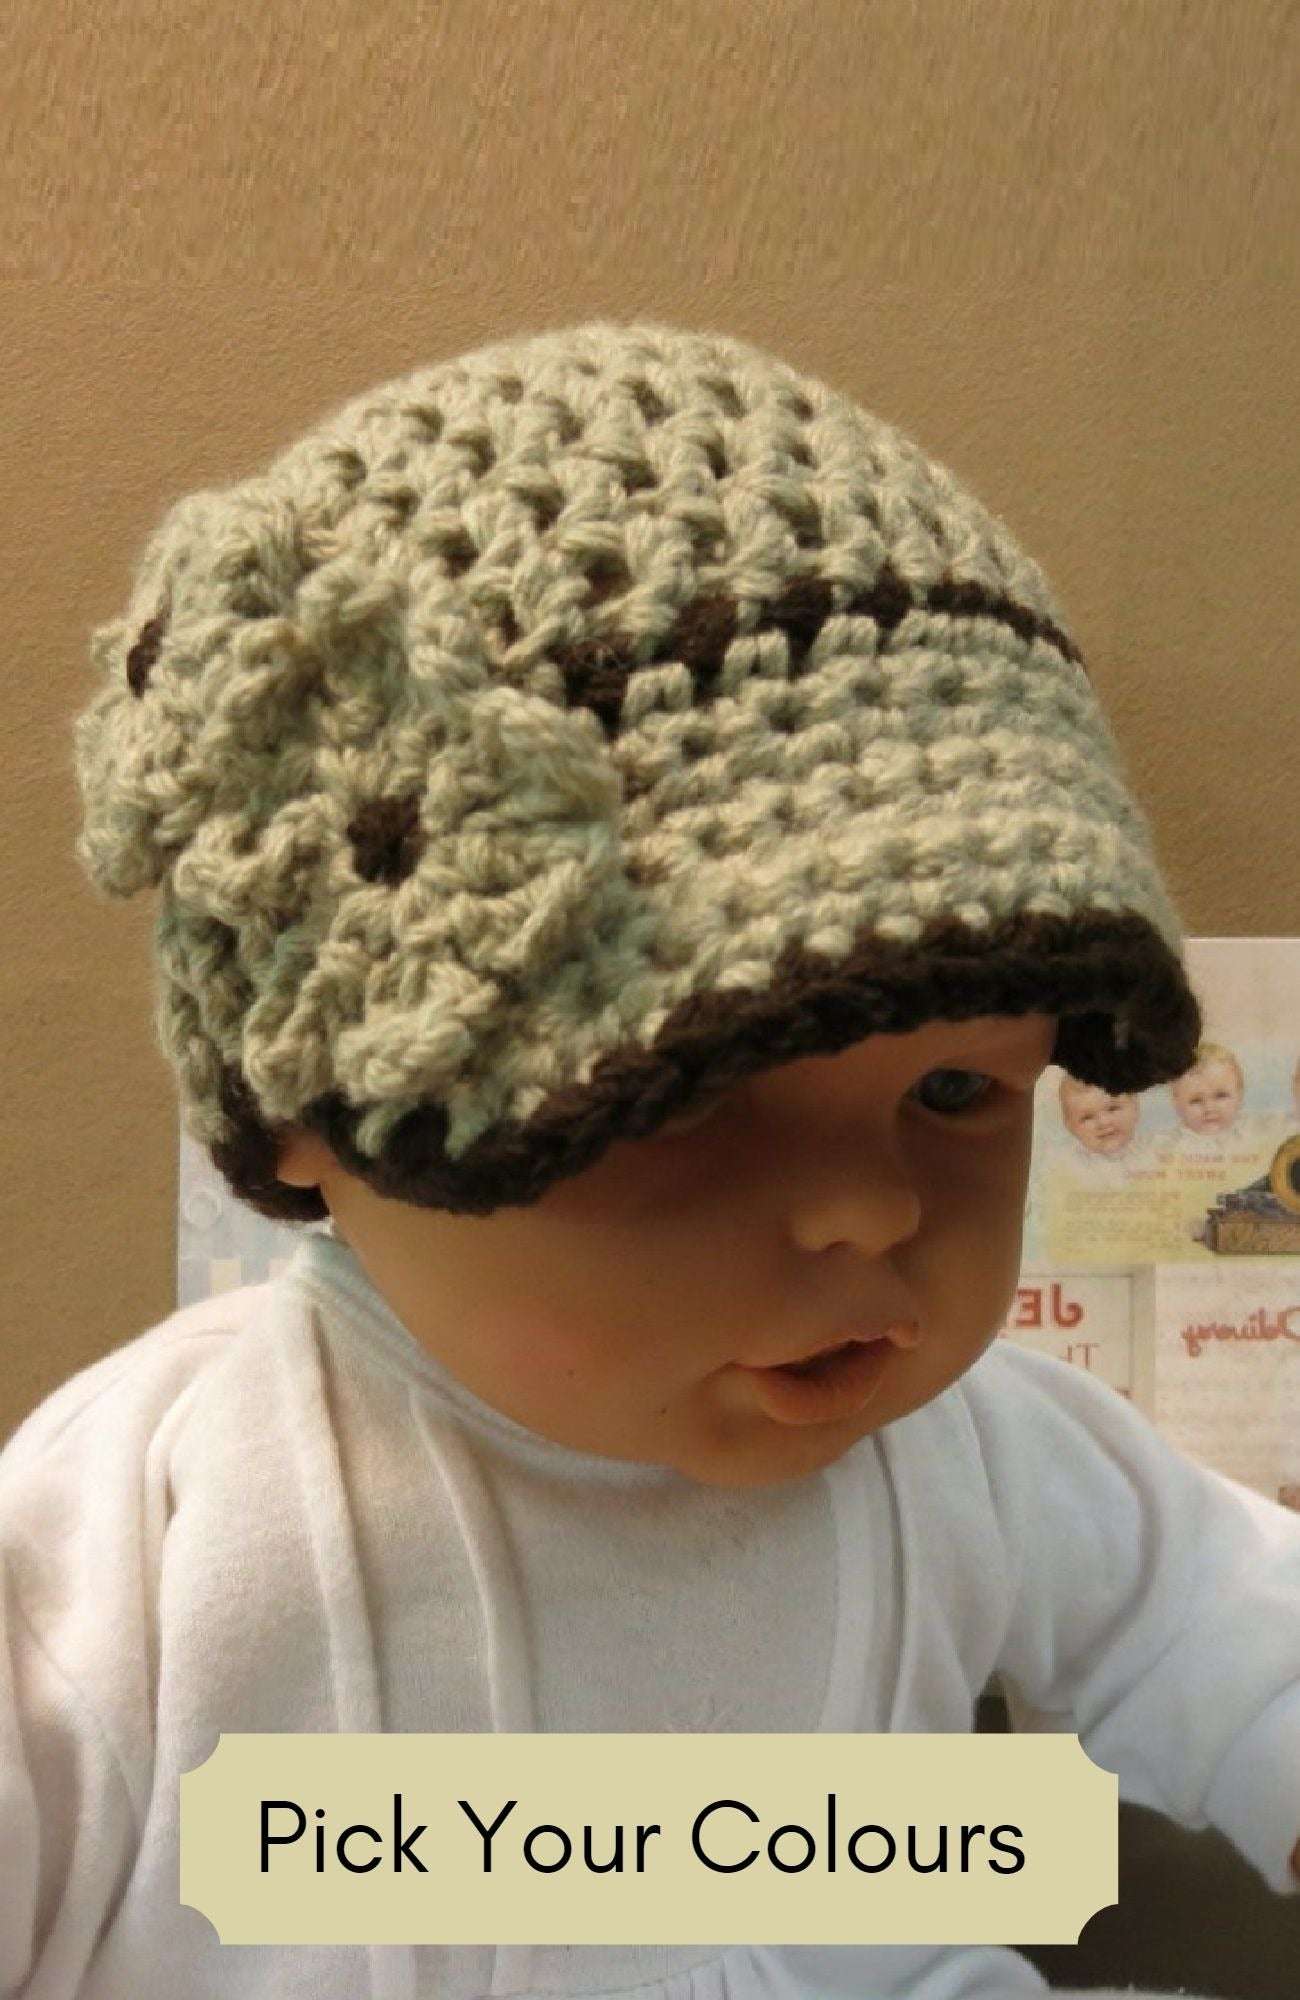 Peak-Cap-Beanie-for-Children-Nchanted-Gifts